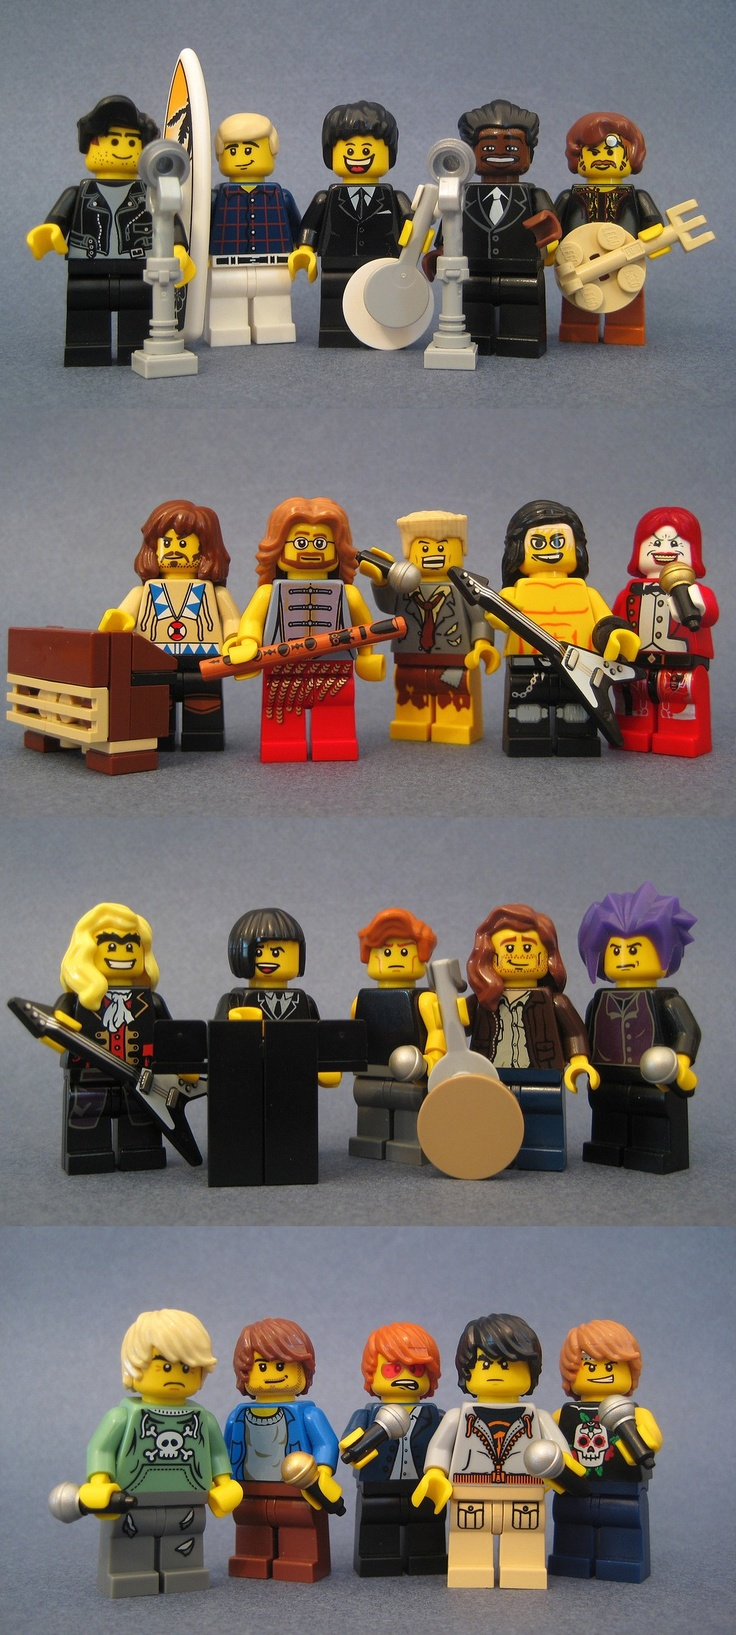 LEGO Rocking from the 60s, 70s, 80s, 90s . . .  And just a side note, it's kinda sad that the ones from the 90s all have the same hairstyle. Just saying.